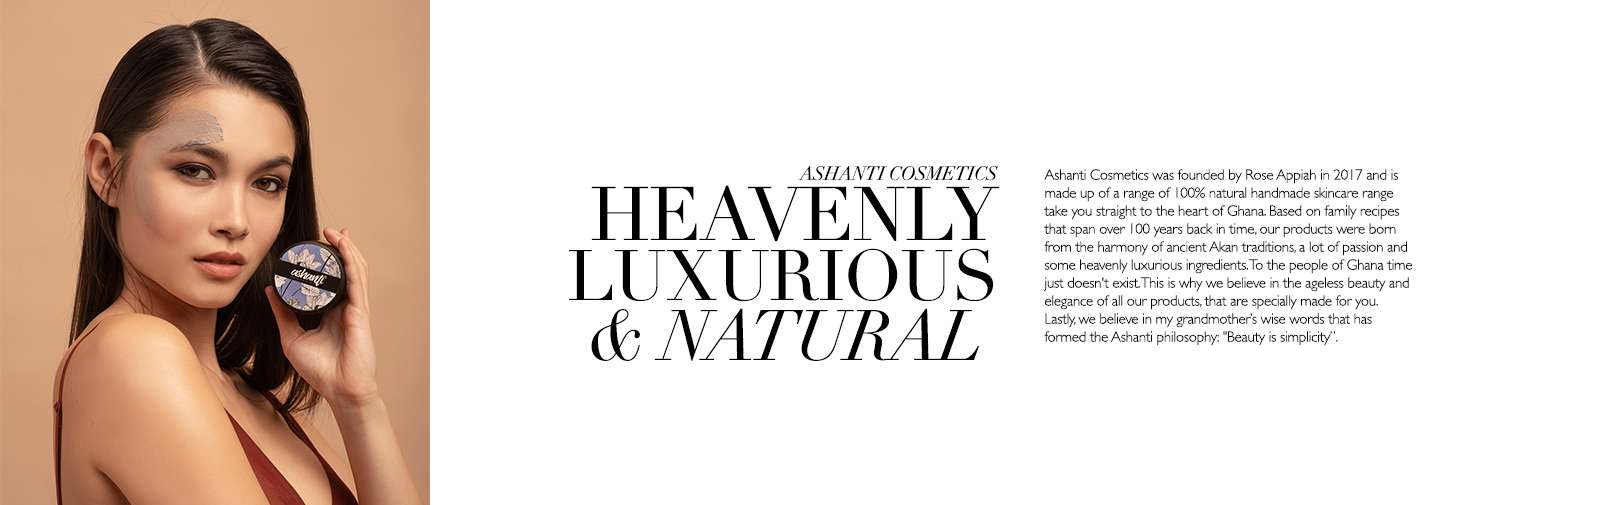 ASHANTI COSMETICS - HEAVENLY LUXURIOUS & NATURAL - Ashanti Cosmetics was founded by Rose Appiah in 2017 and is made up of a range of 100% natural handmade skincare range take you straight to the heart of Ghana. Based on family recipes that span over 100 years back in time, our products were born from the harmony of ancient Akan traditions, a lot of passion and some heavenly luxurious ingredients. To the people of Ghana time just doesn't exist. This is why we believe in the ageless beauty and elegance of all our products, that are specially made for you.  We believe that the softness of our shea butter, cocoa butter, coconut and pomegranate oil based moisturisers and oils purify your mind and ease your soul, to just let you get on with life without the worry.  We are a 100% positive about the healing powers of love, peace and playful lust. So we highly encourage you to practice all three separately or at the same time whilst using our magical creams to enhance your daily life.  Each one of products is bursting with organic vegan beauty love. Our promise to you is to help keep your skin perfectly supple, golden and smooth without any added synthetics.  Lastly, we believe in my grandmother's wise words that has formed the Ashanti philosophy: 'Beauty is simplicity'.